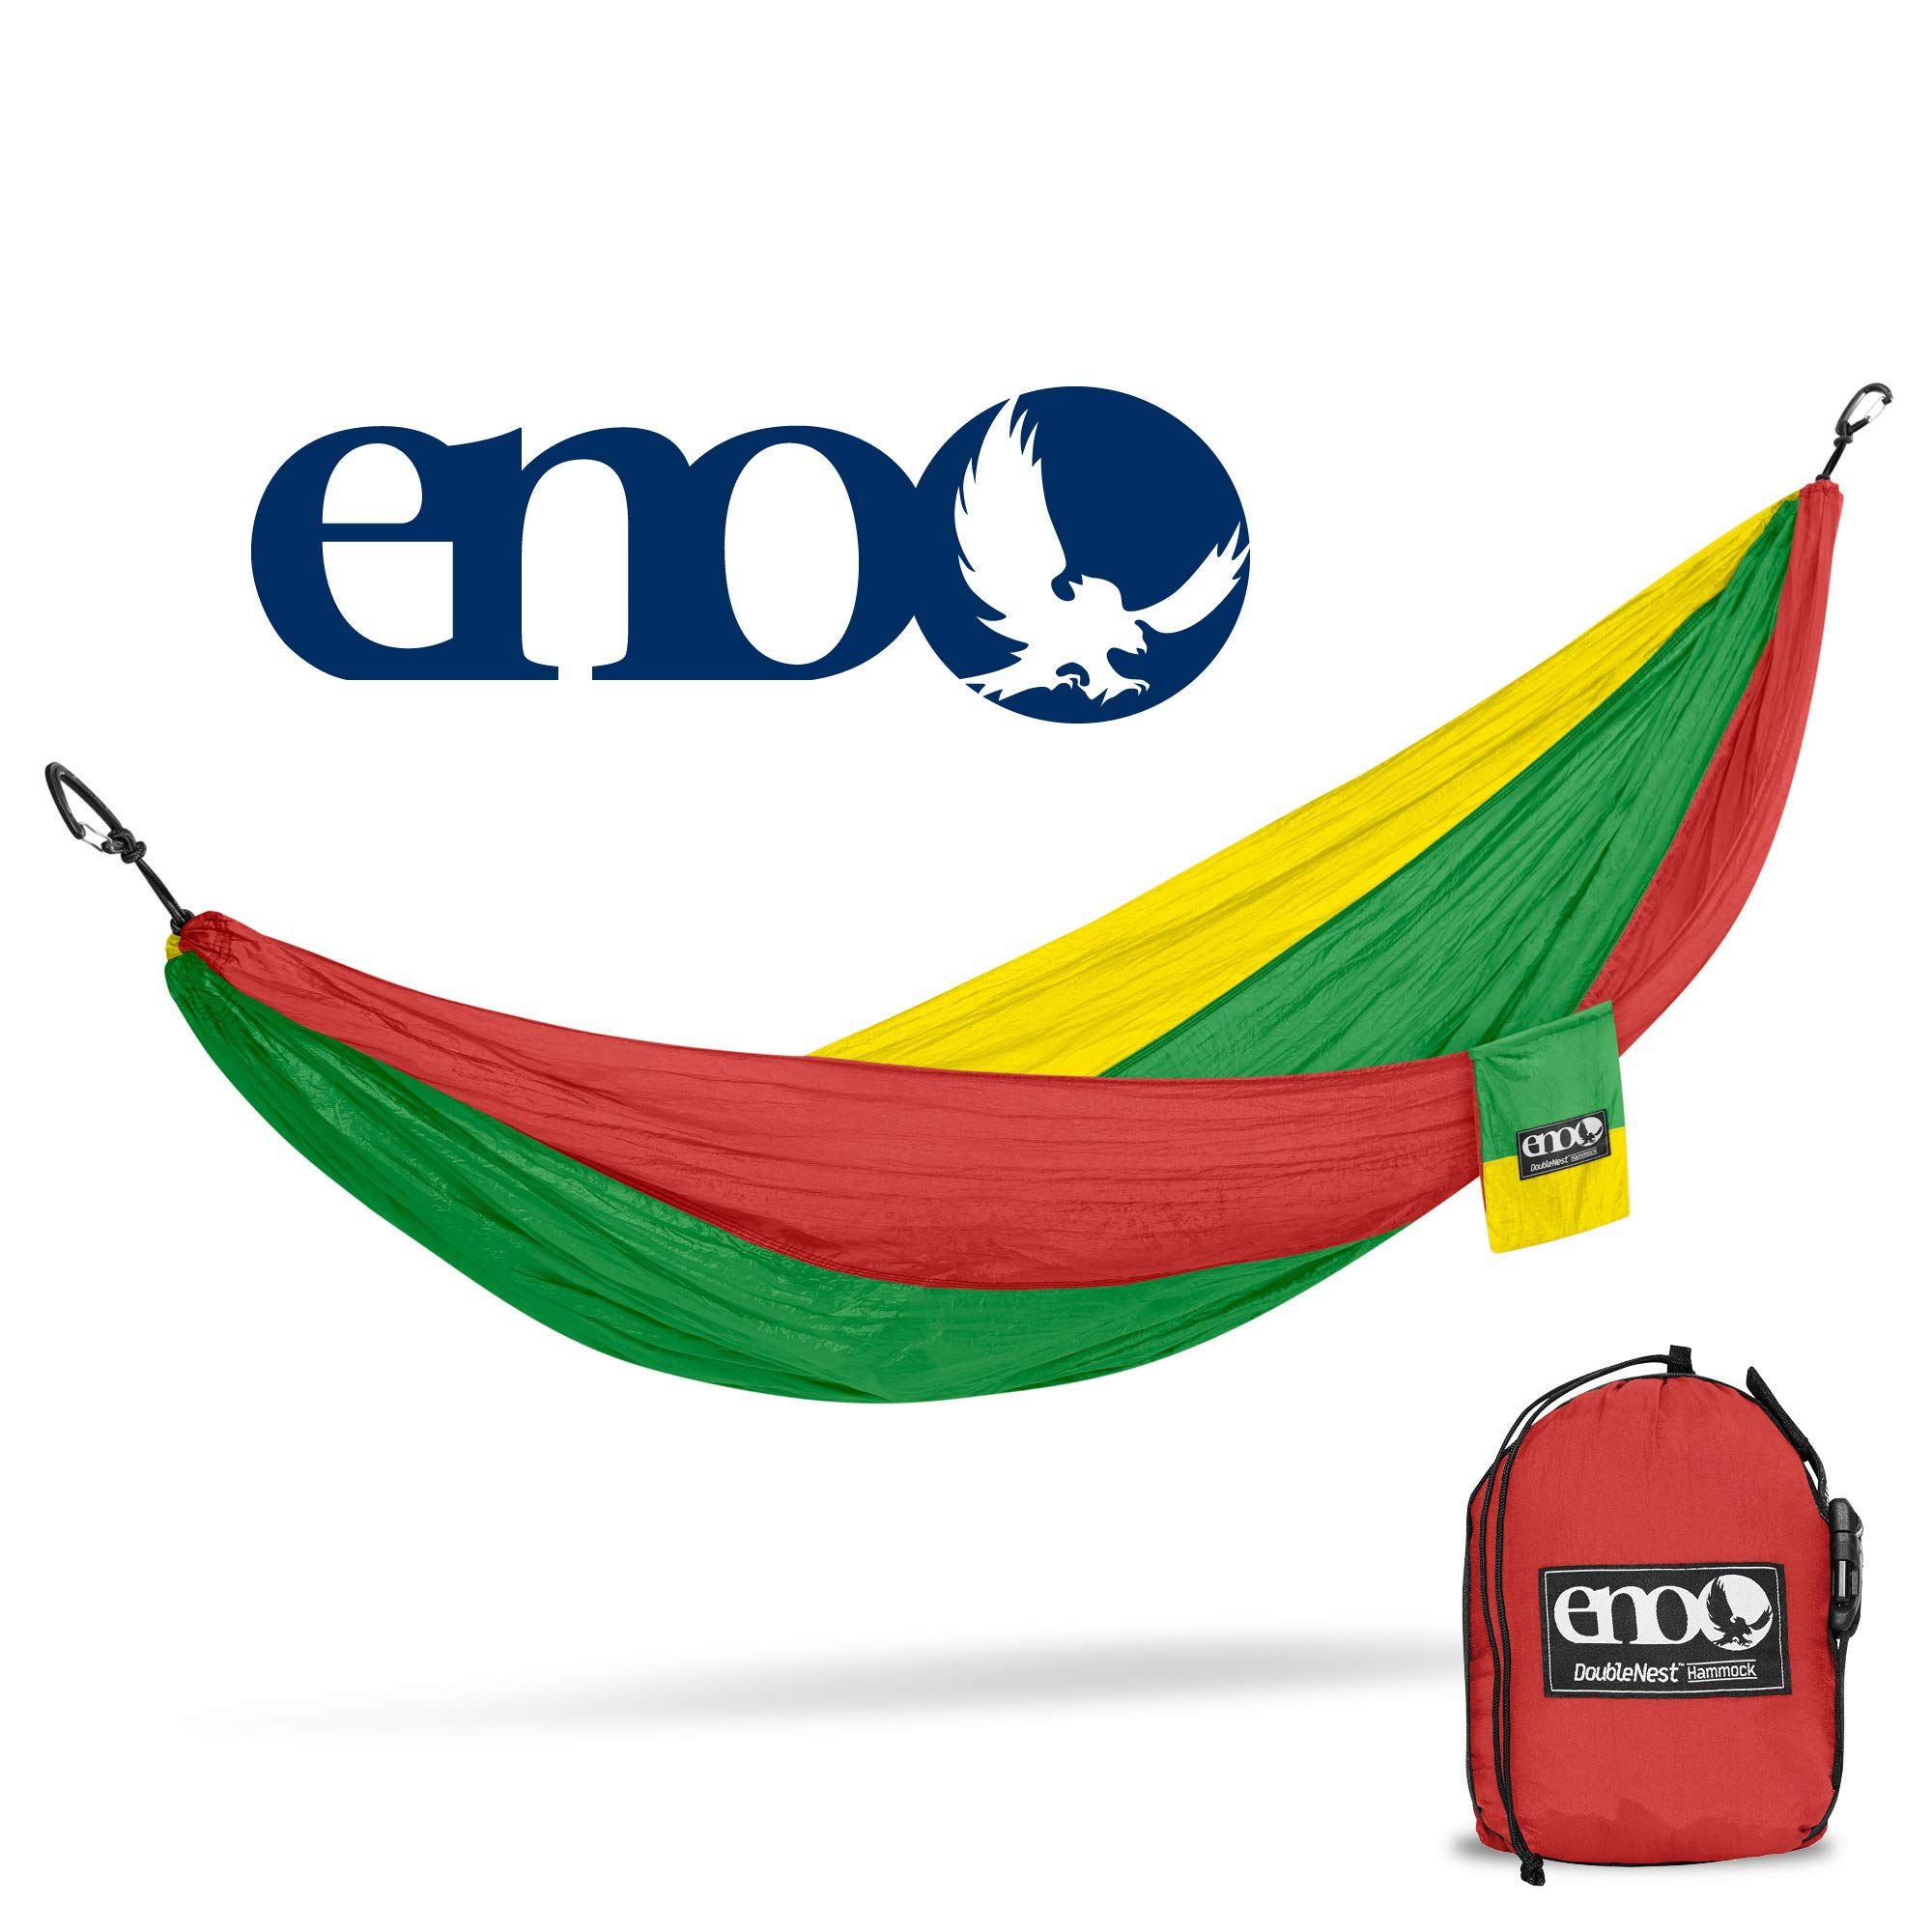 2X 5kN Heavy Duty Carabiners Compatible with All ENO hammocks Hammock Straps by HikeGuru with Metallic Buckle System Instead of Loops